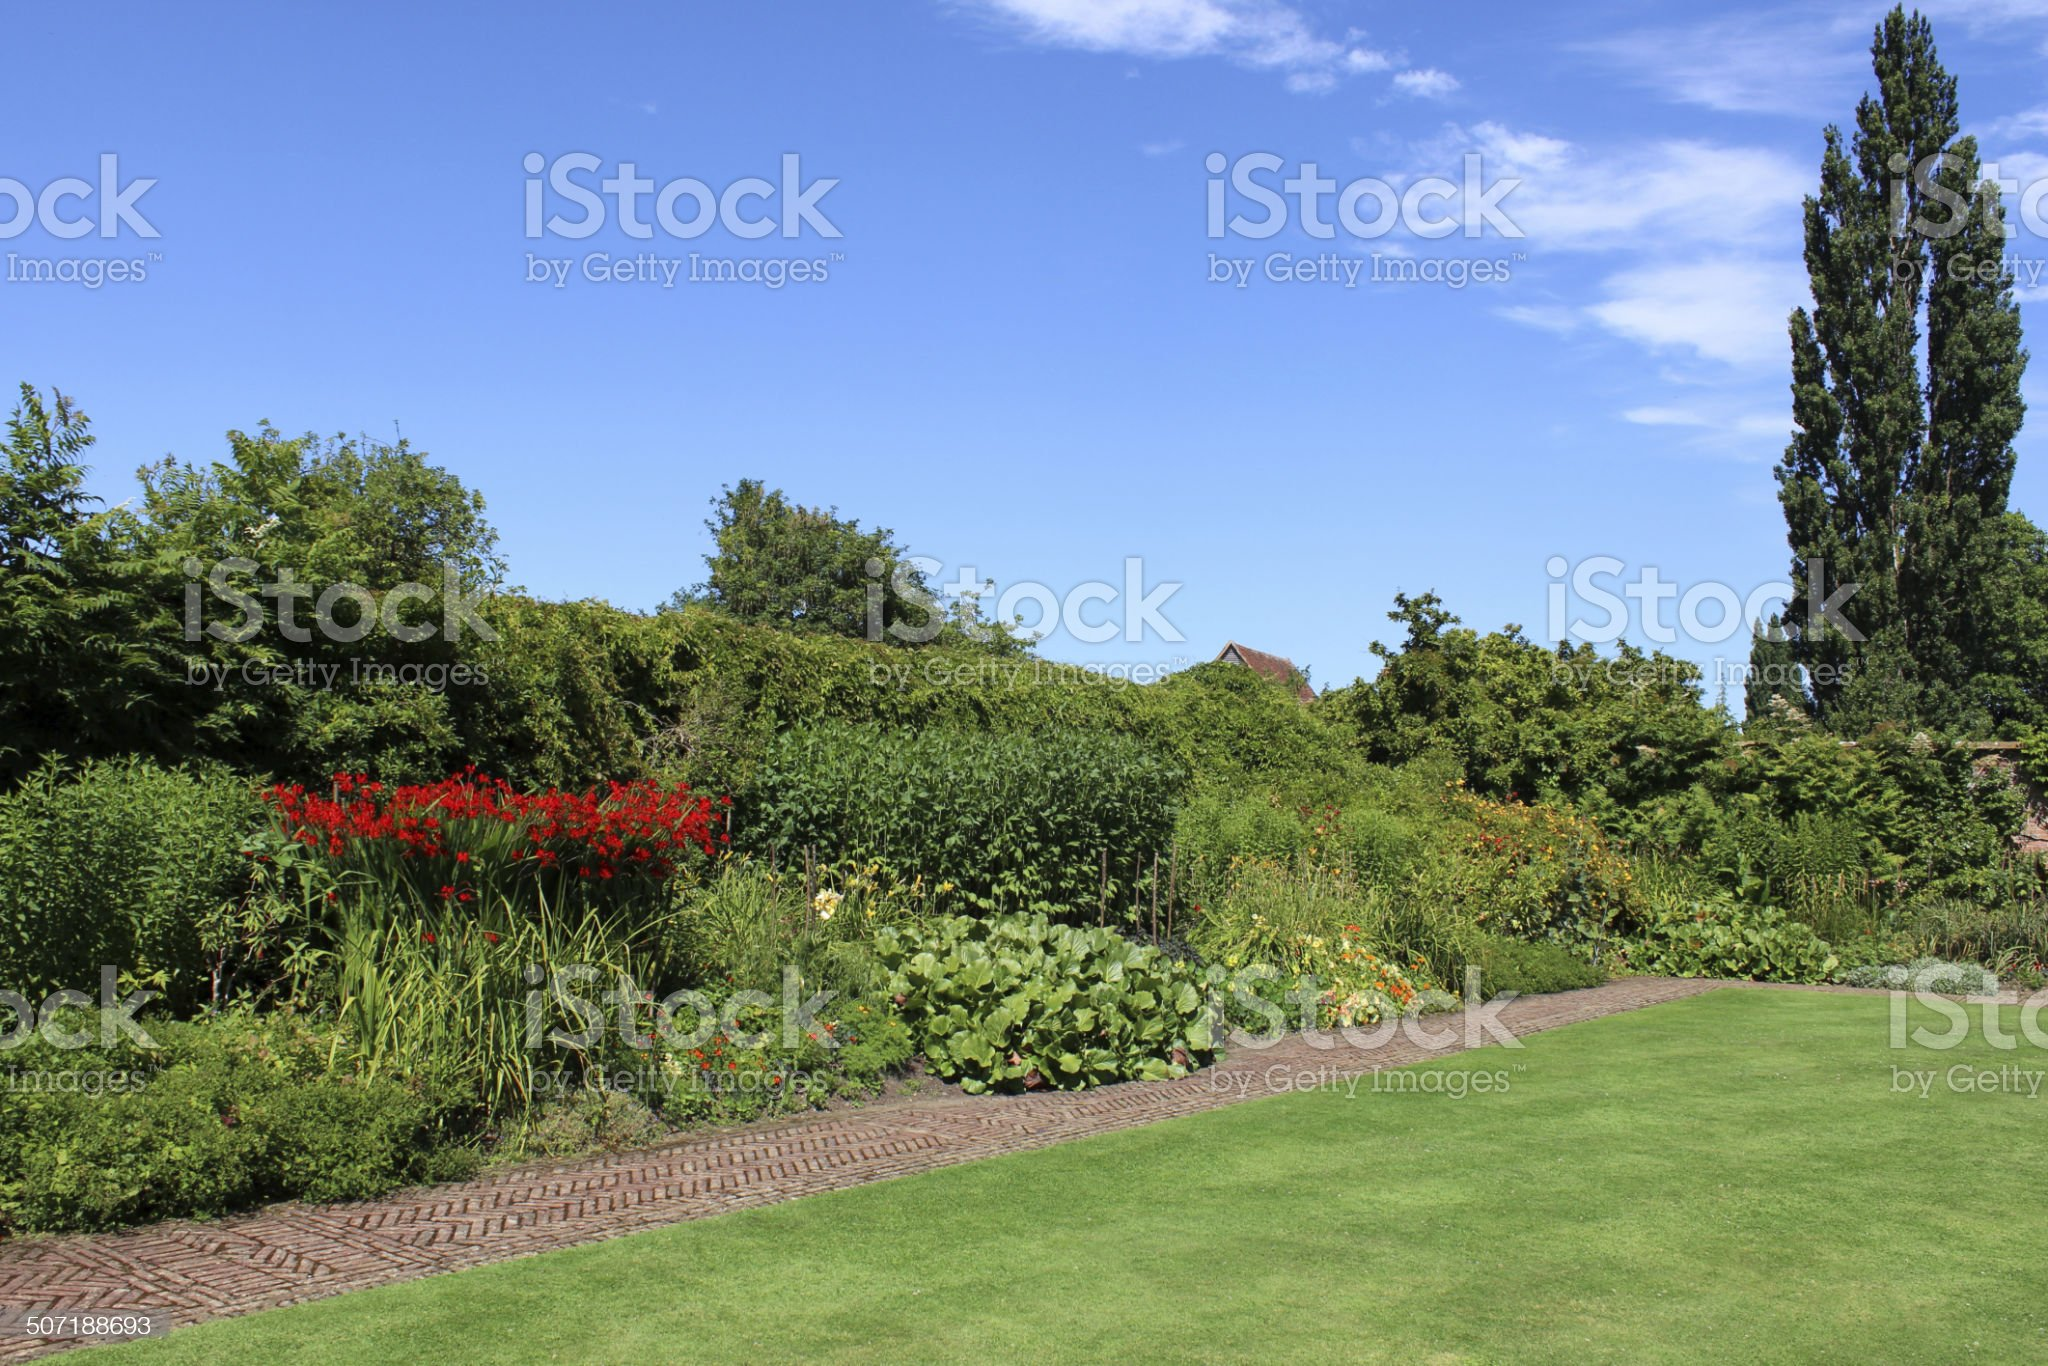 Red-brick path, block-paving, paved pathway image, herbaceous-border, flowers, lawn, lombardy-poplar royalty-free stock photo